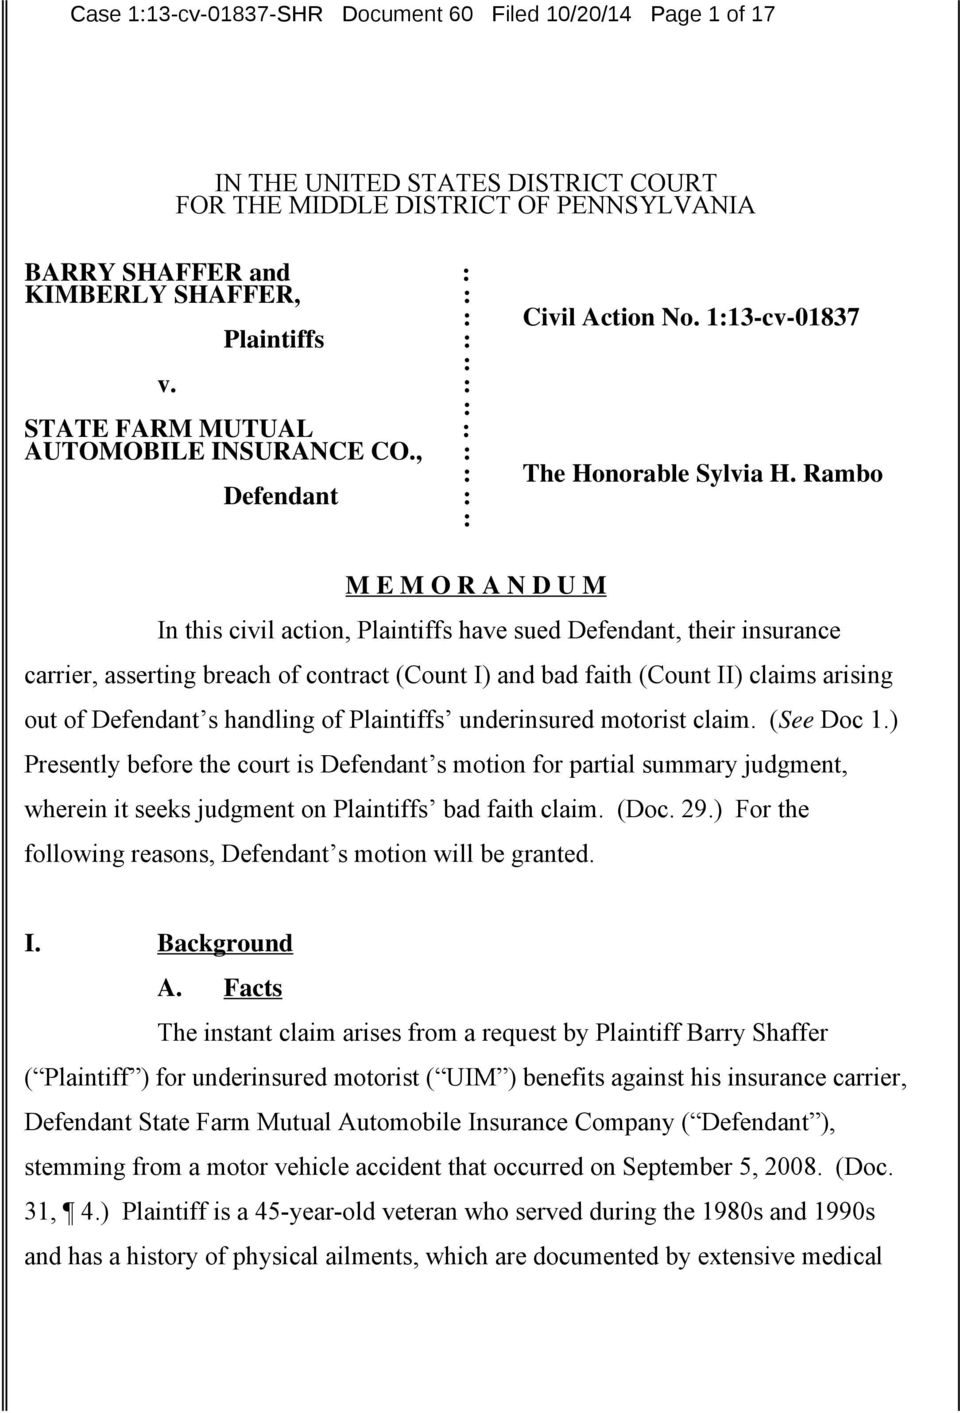 Rambo Defendant : : M E M O R A N D U M In this civil action, Plaintiffs have sued Defendant, their insurance carrier, asserting breach of contract (Count I) and bad faith (Count II) claims arising